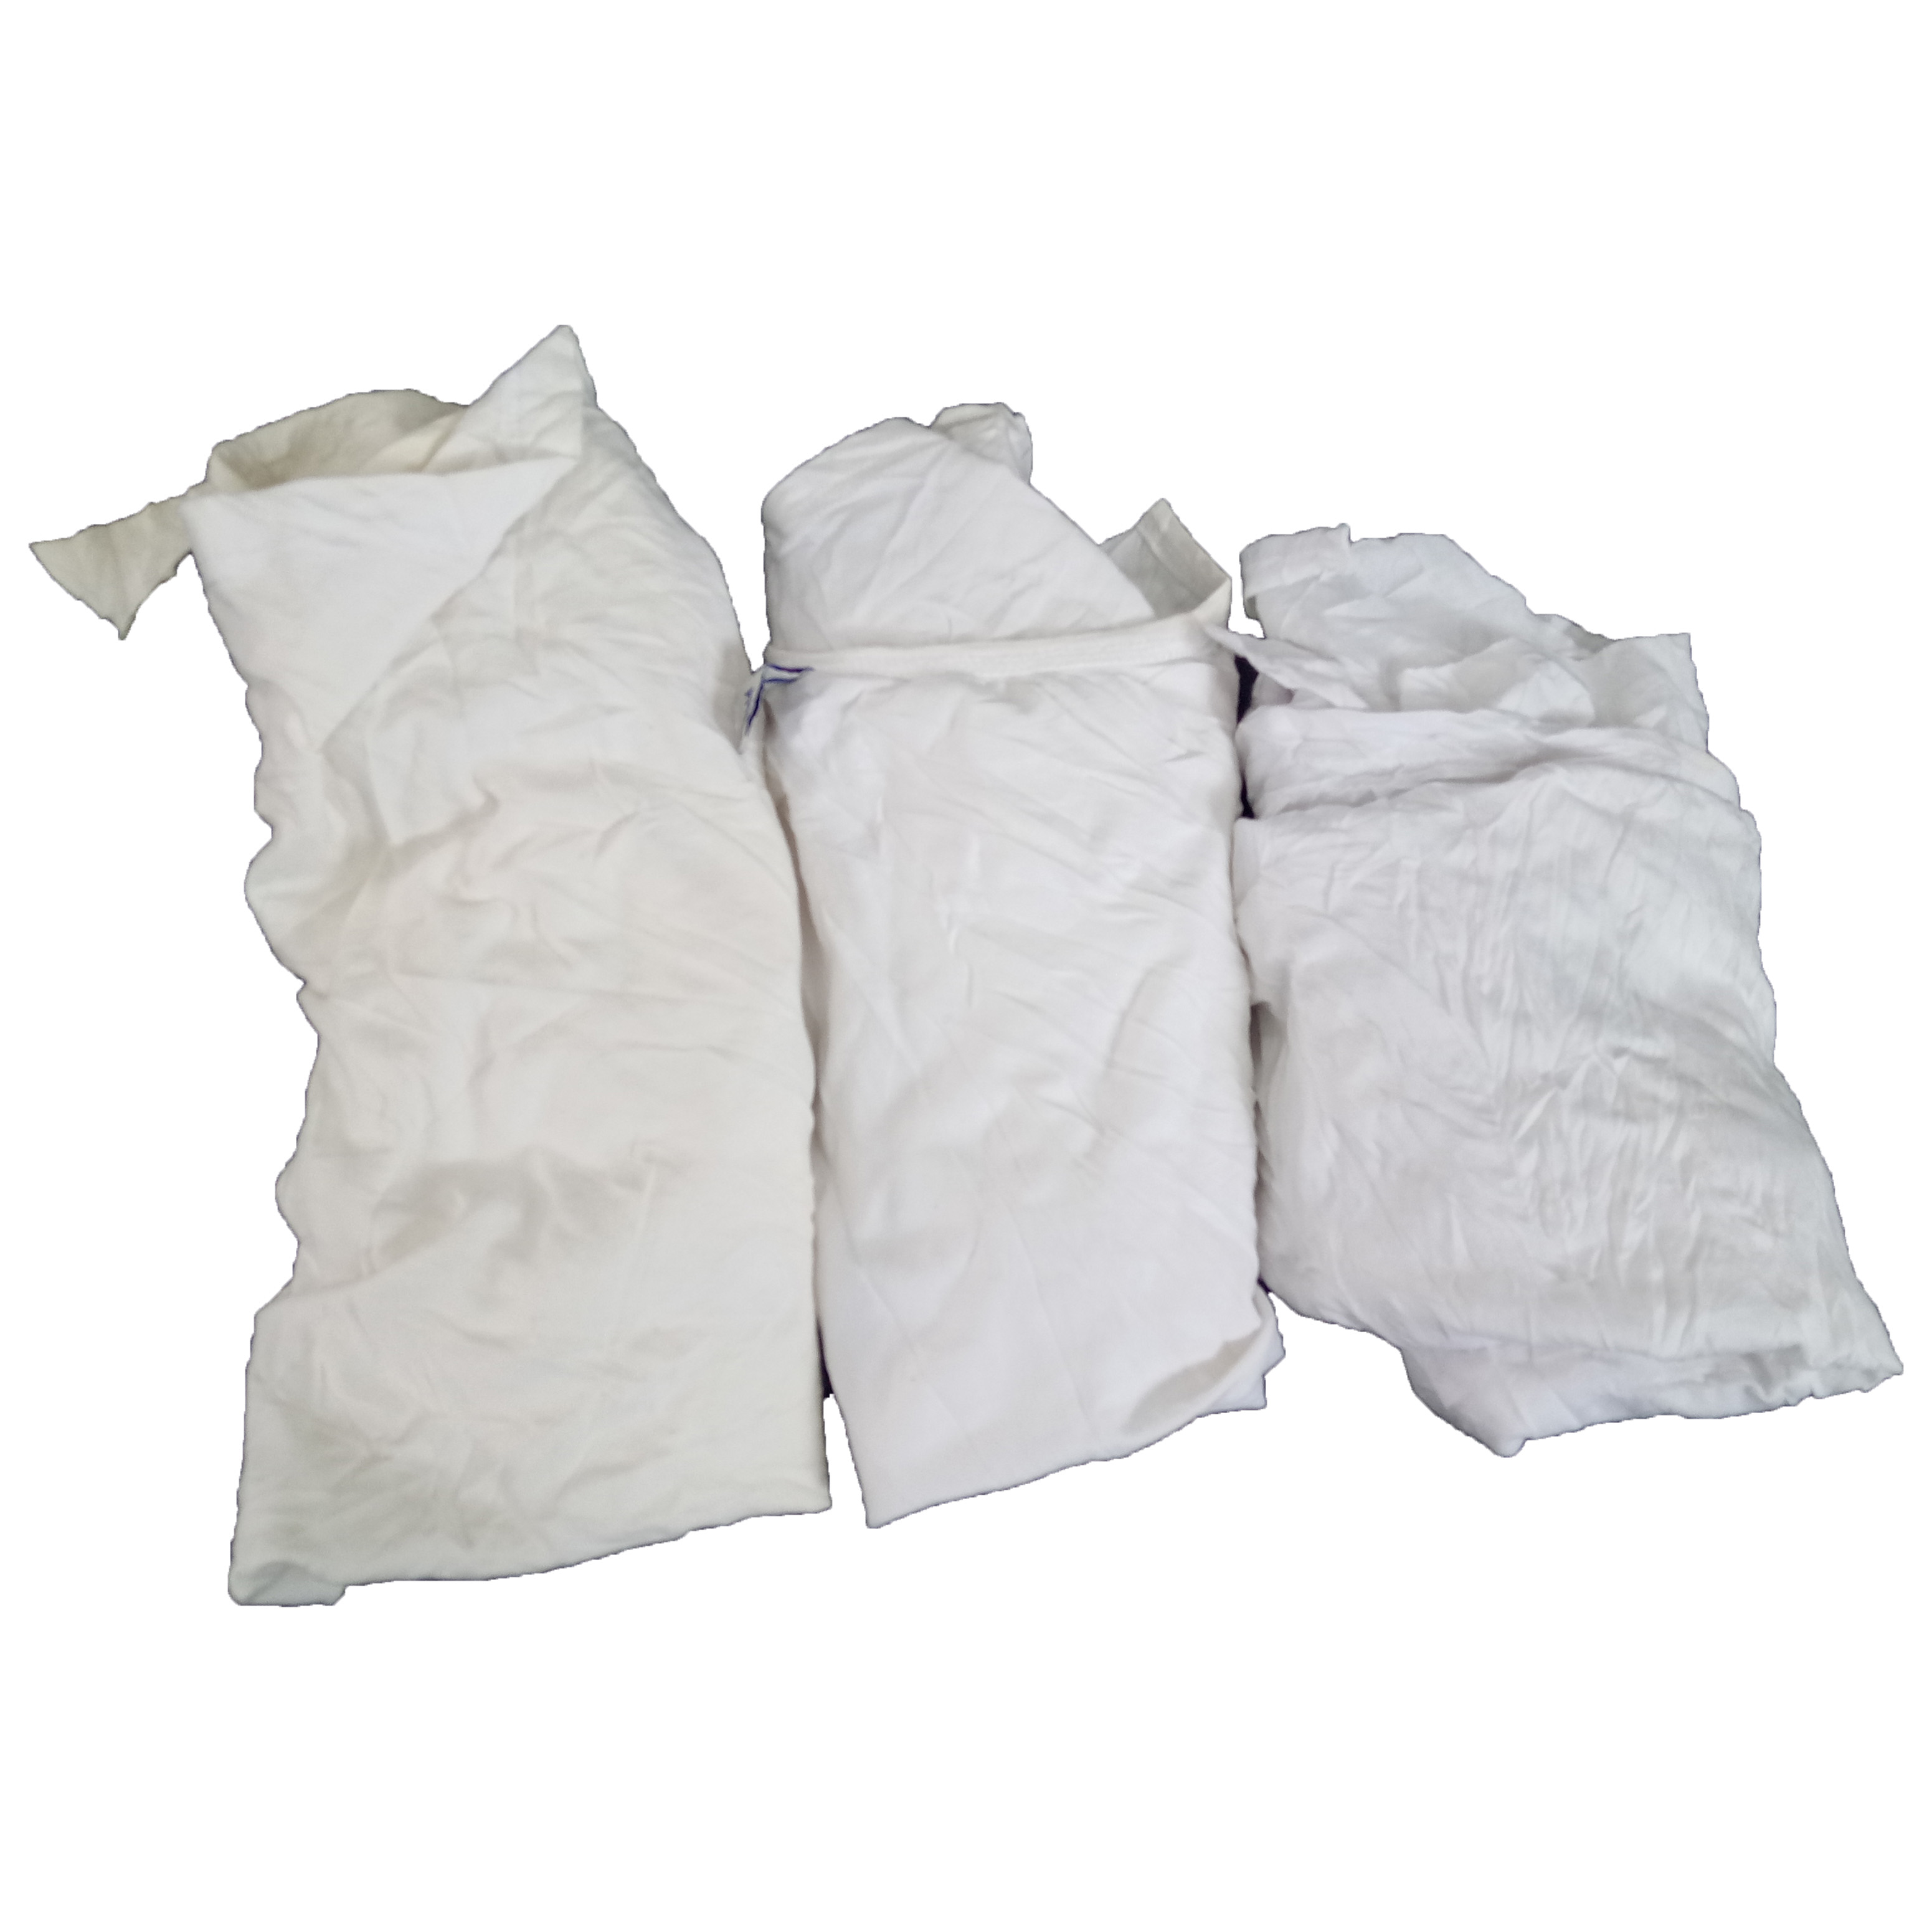 Used pure white t shirt absorb water and oil cotton wiping rags